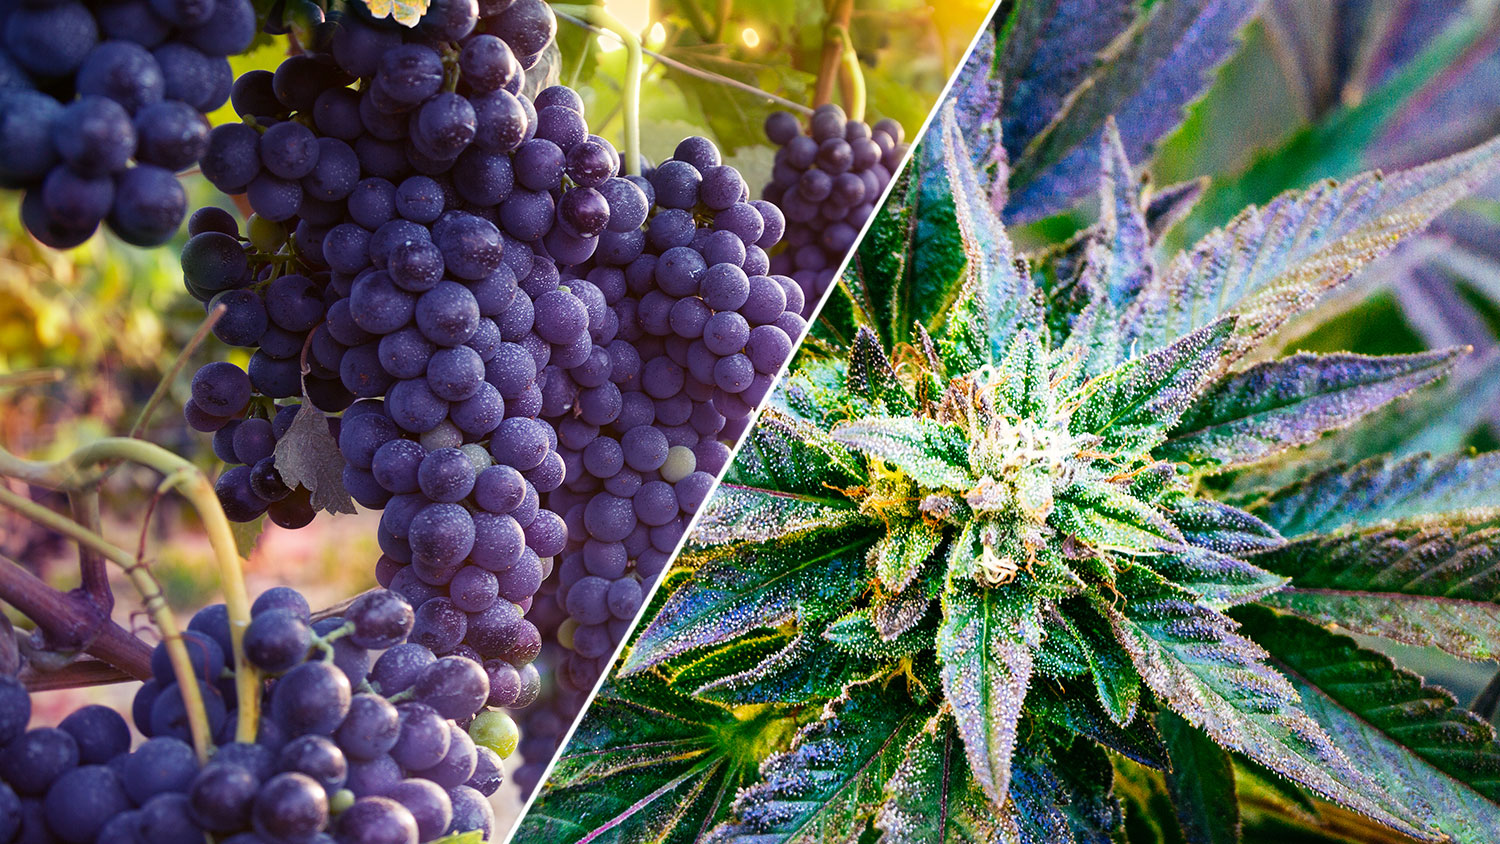 weed and wine symposium in california